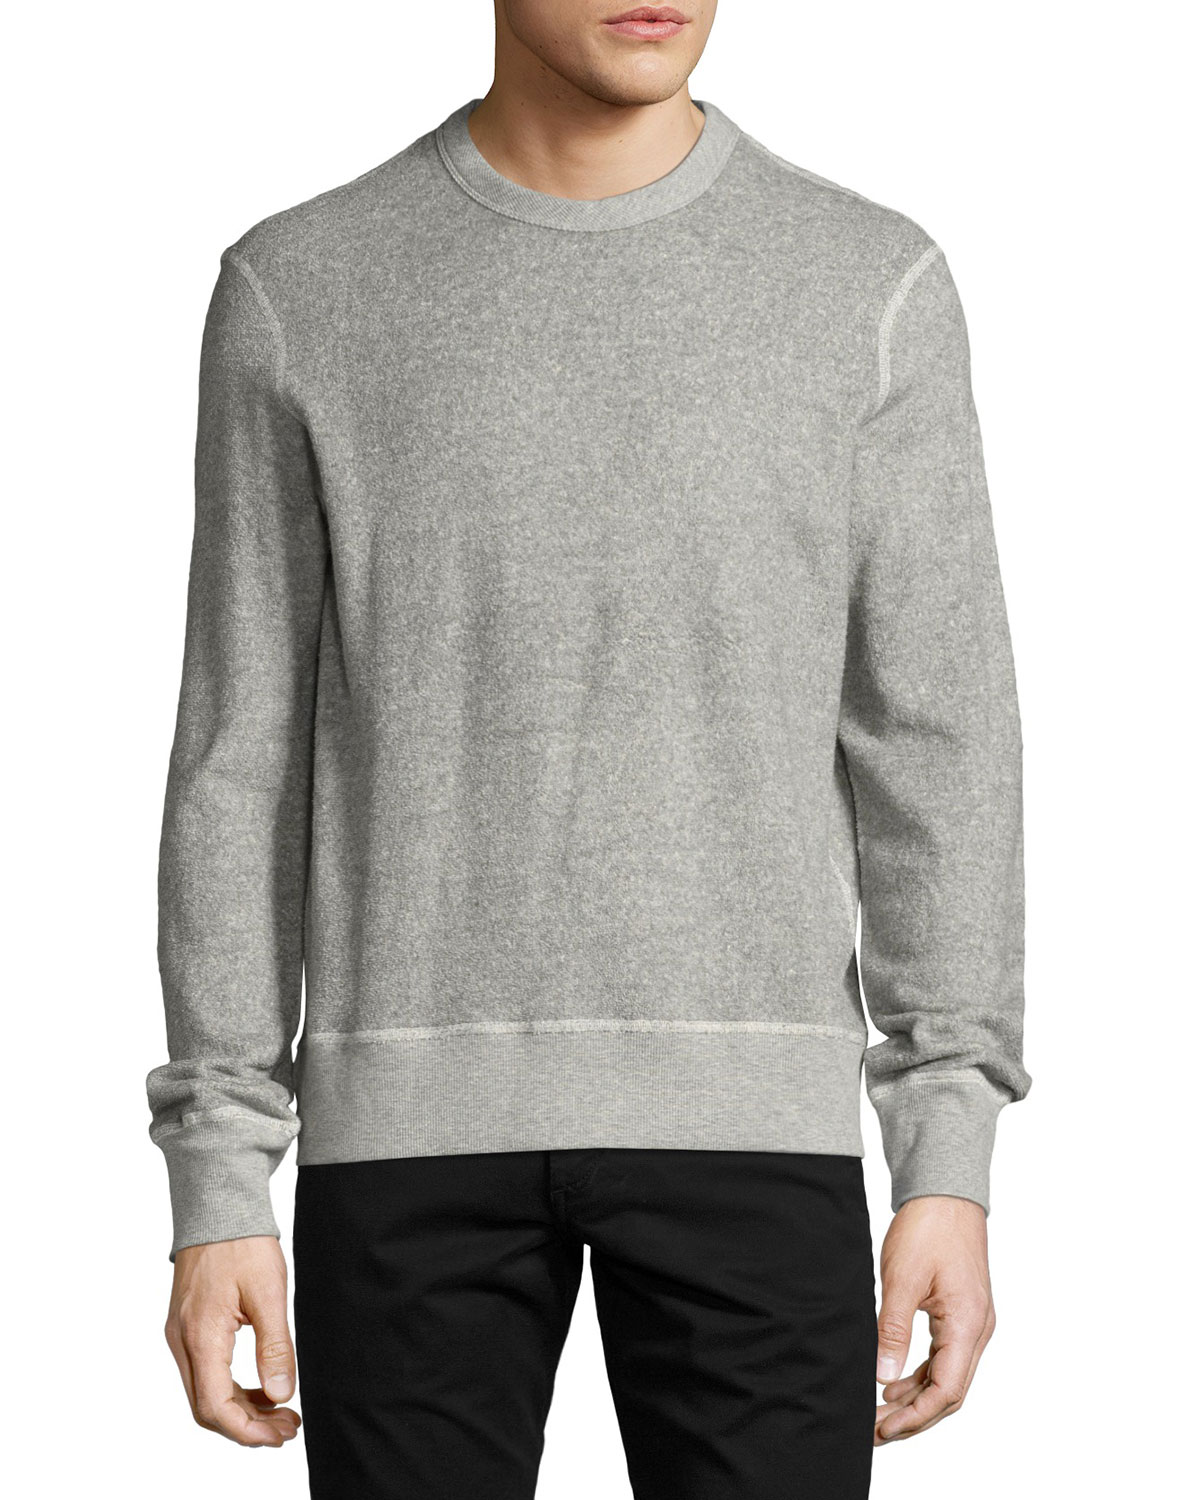 Toweling Sweatshirt